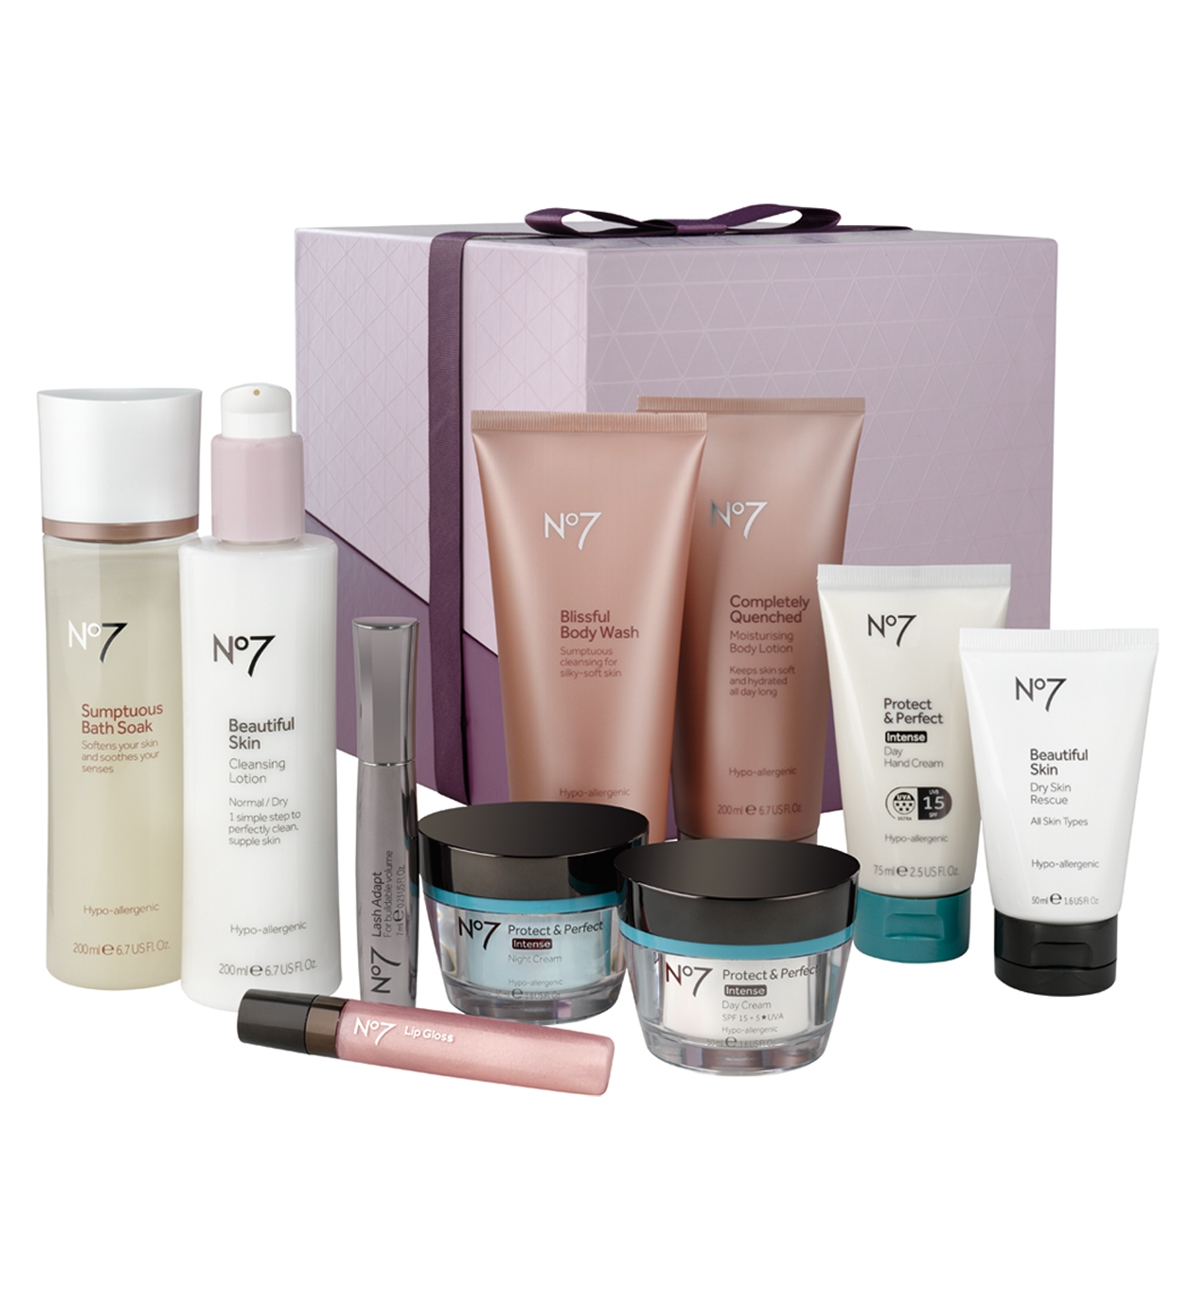 Boots Star Gift Revealed No7 Ultimate Collection Gift Set At U20ac40 Down From U20ac84! | Beaut.ie